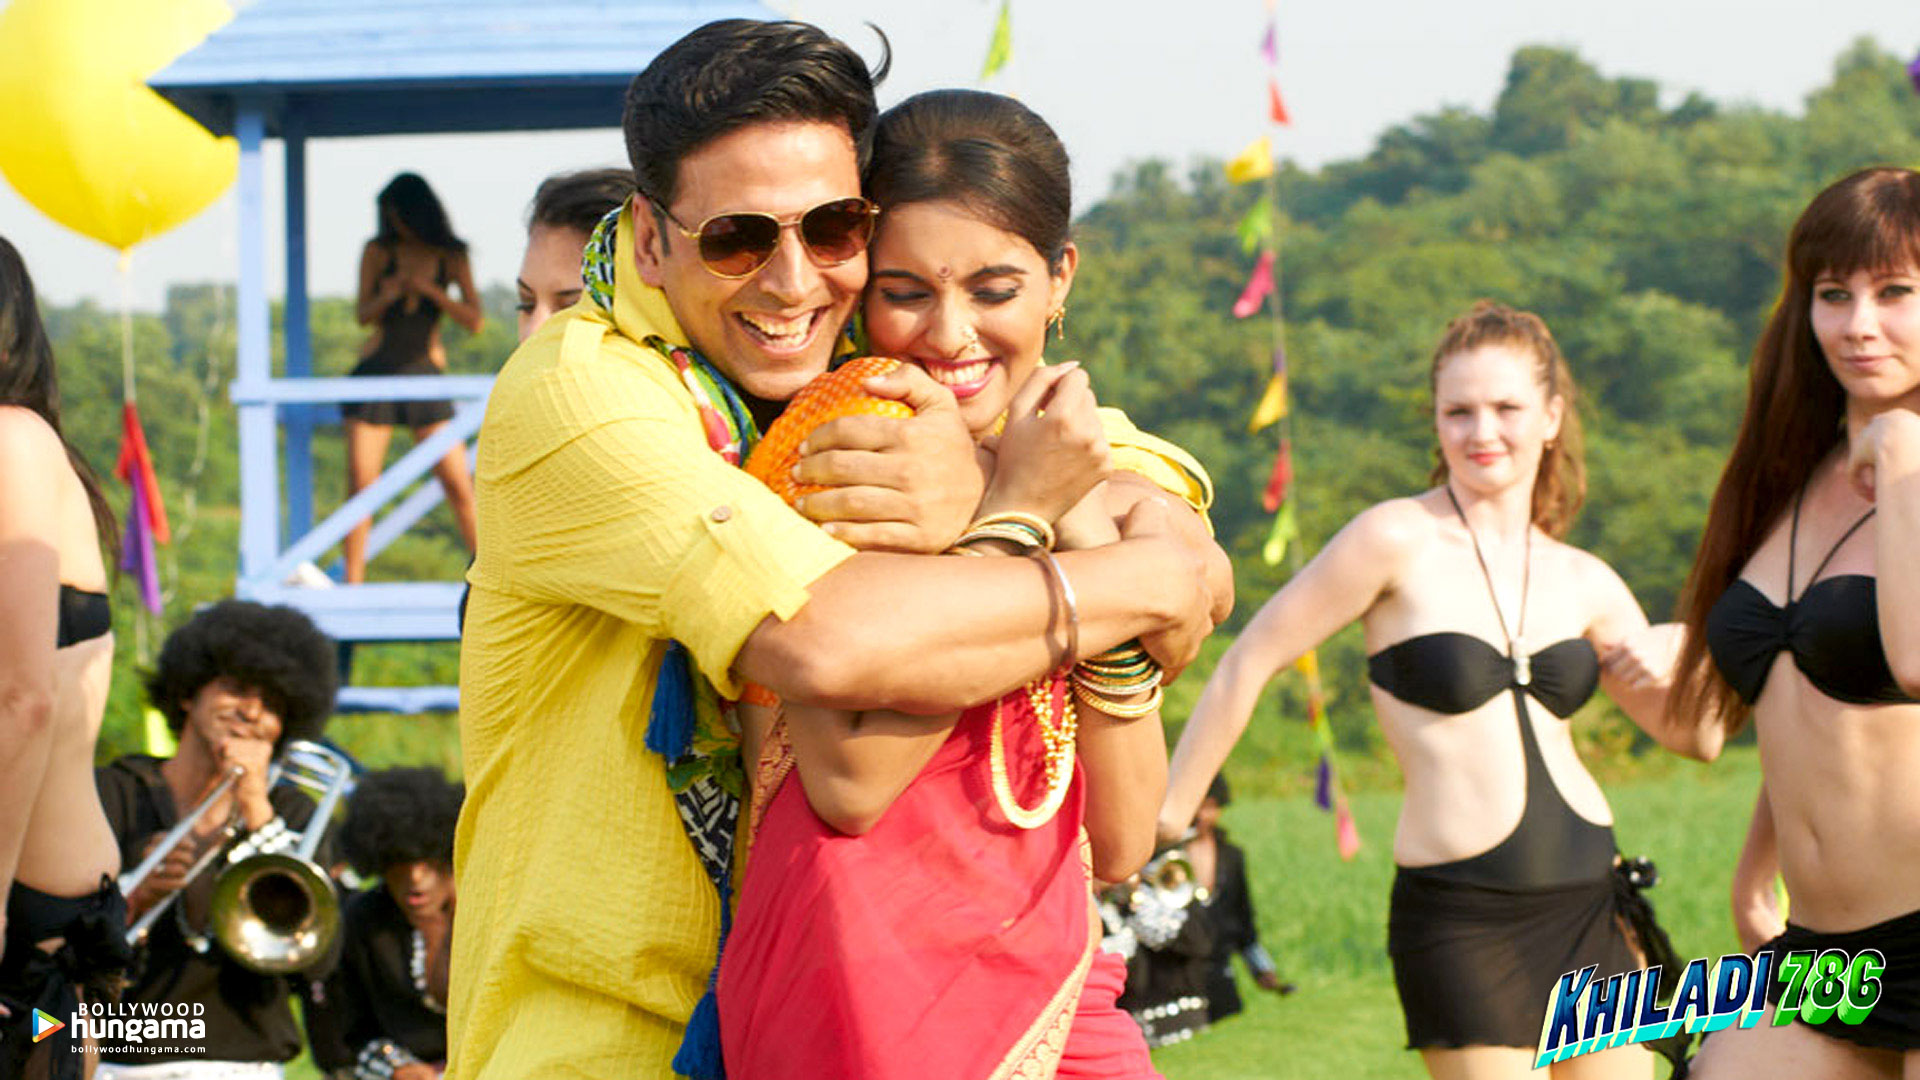 Akshay Kumar Dj Remix Song Free Download - remixrock.com